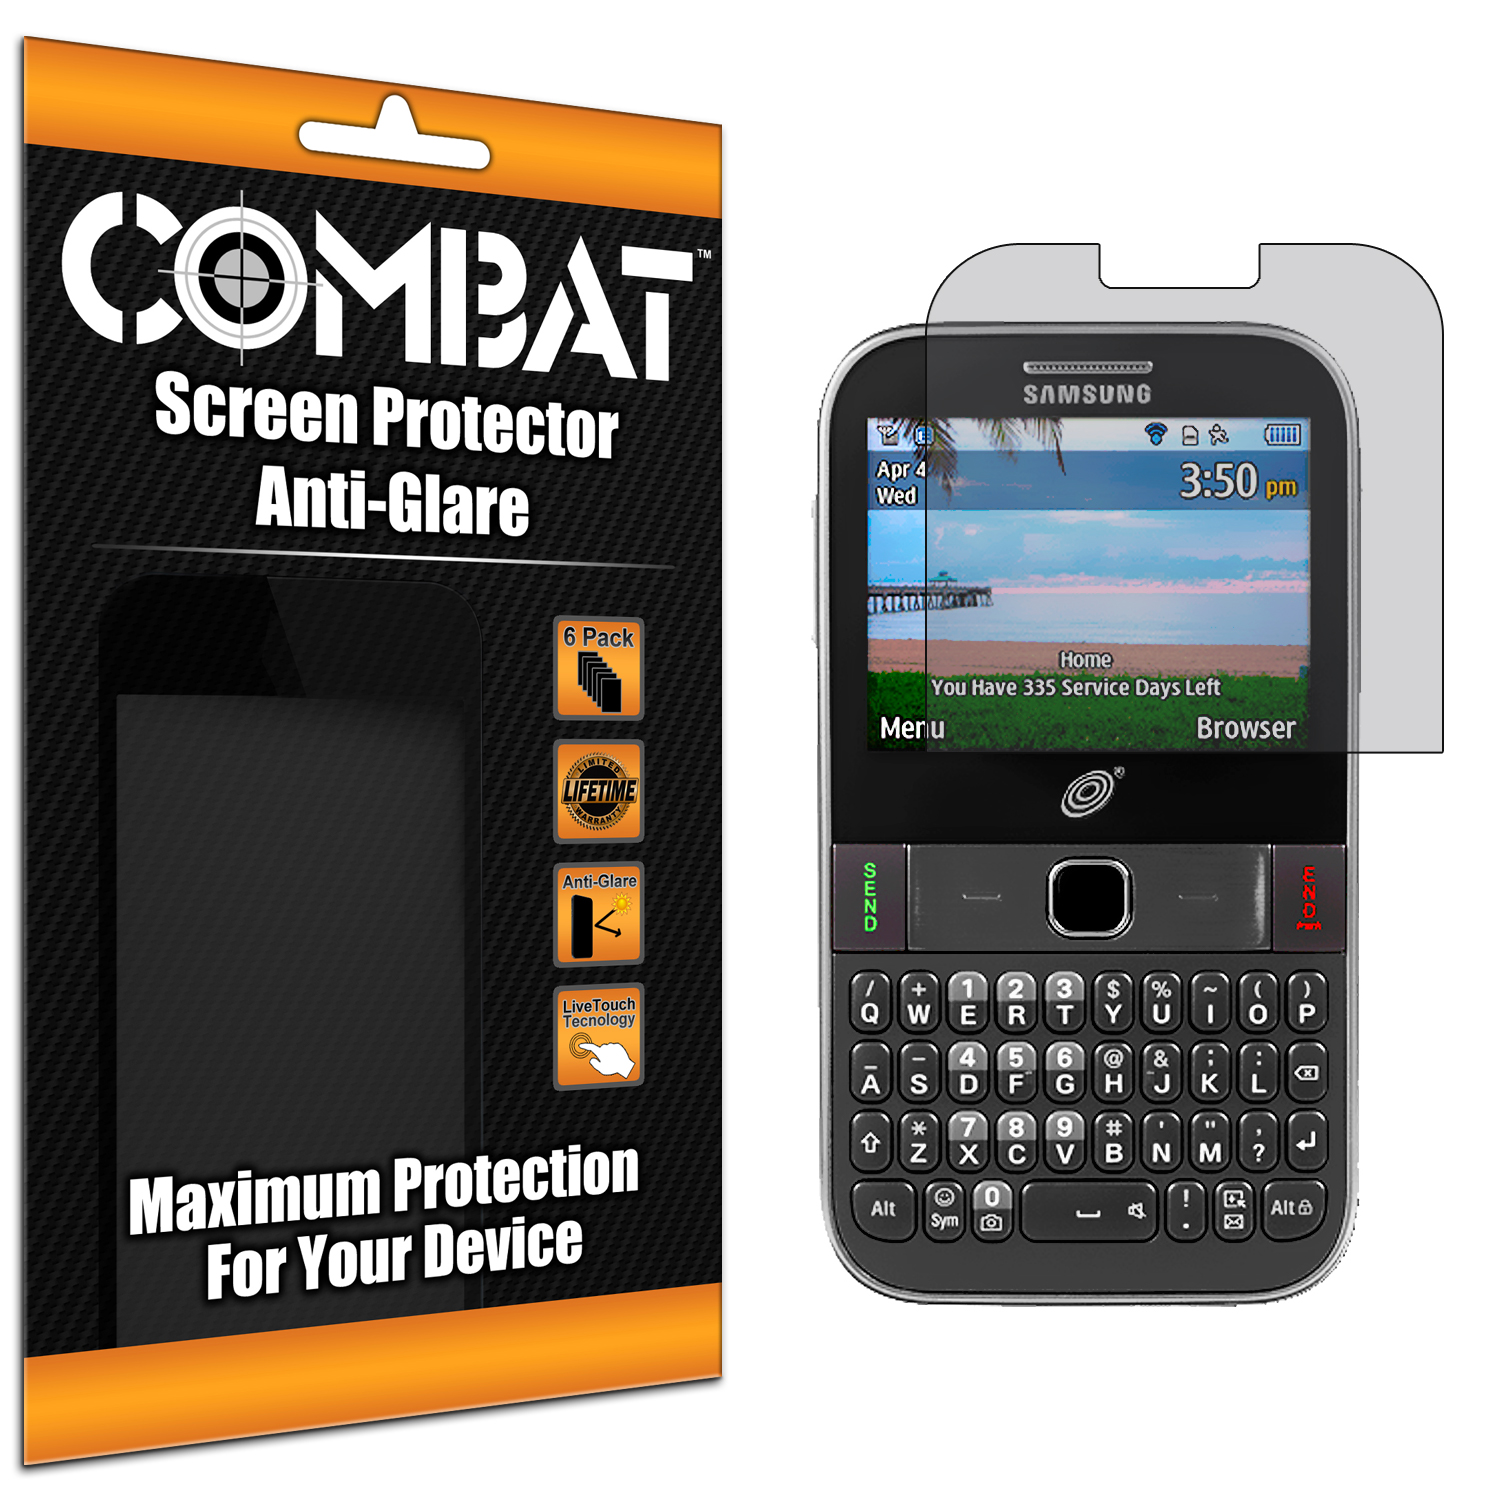 Samsung Freeform M S390G Combat 6 Pack Anti-Glare Matte Screen Protector